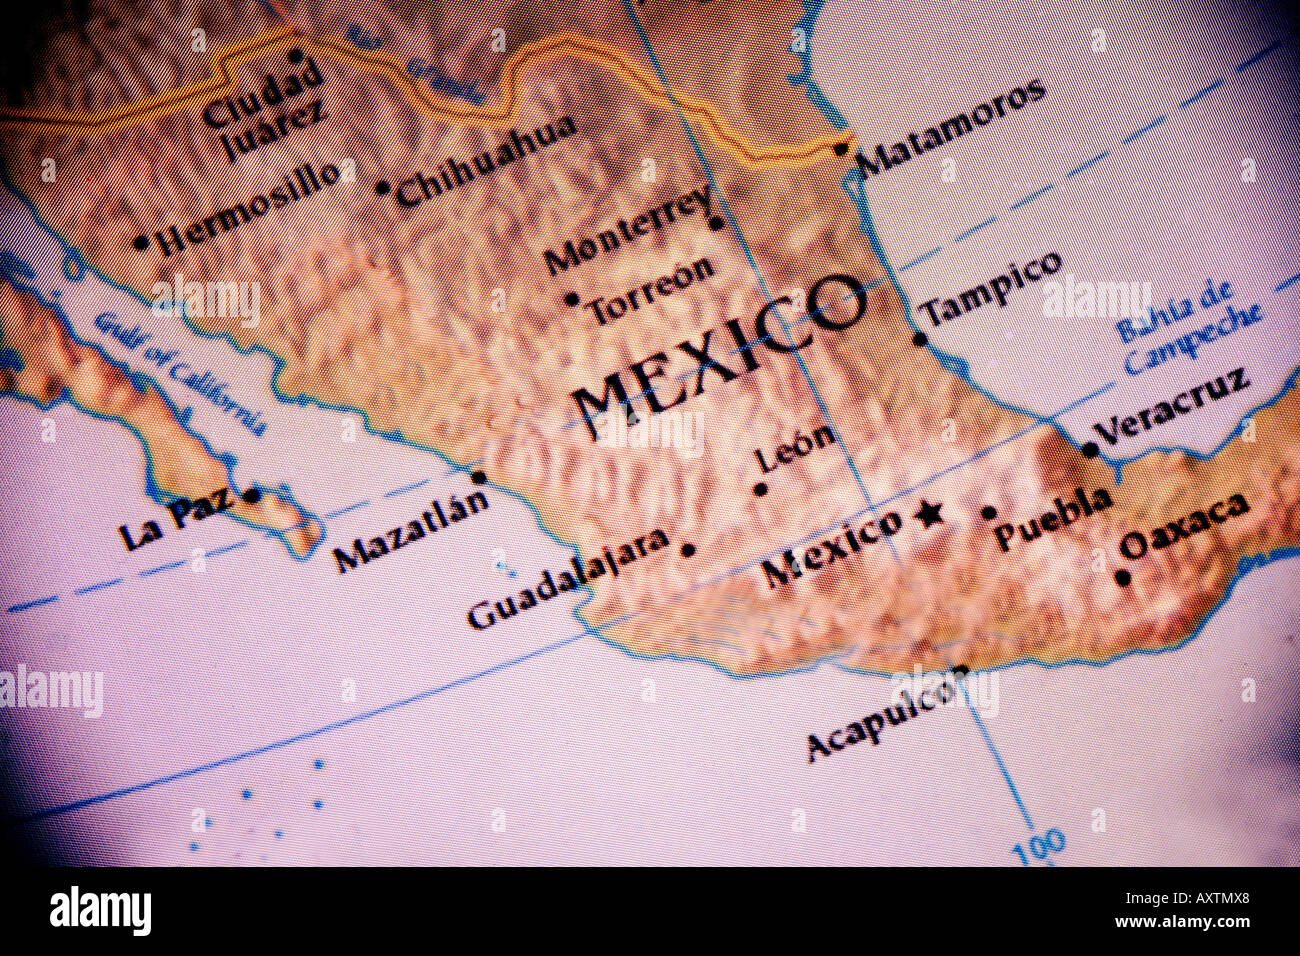 Current map showing the country of Mexico